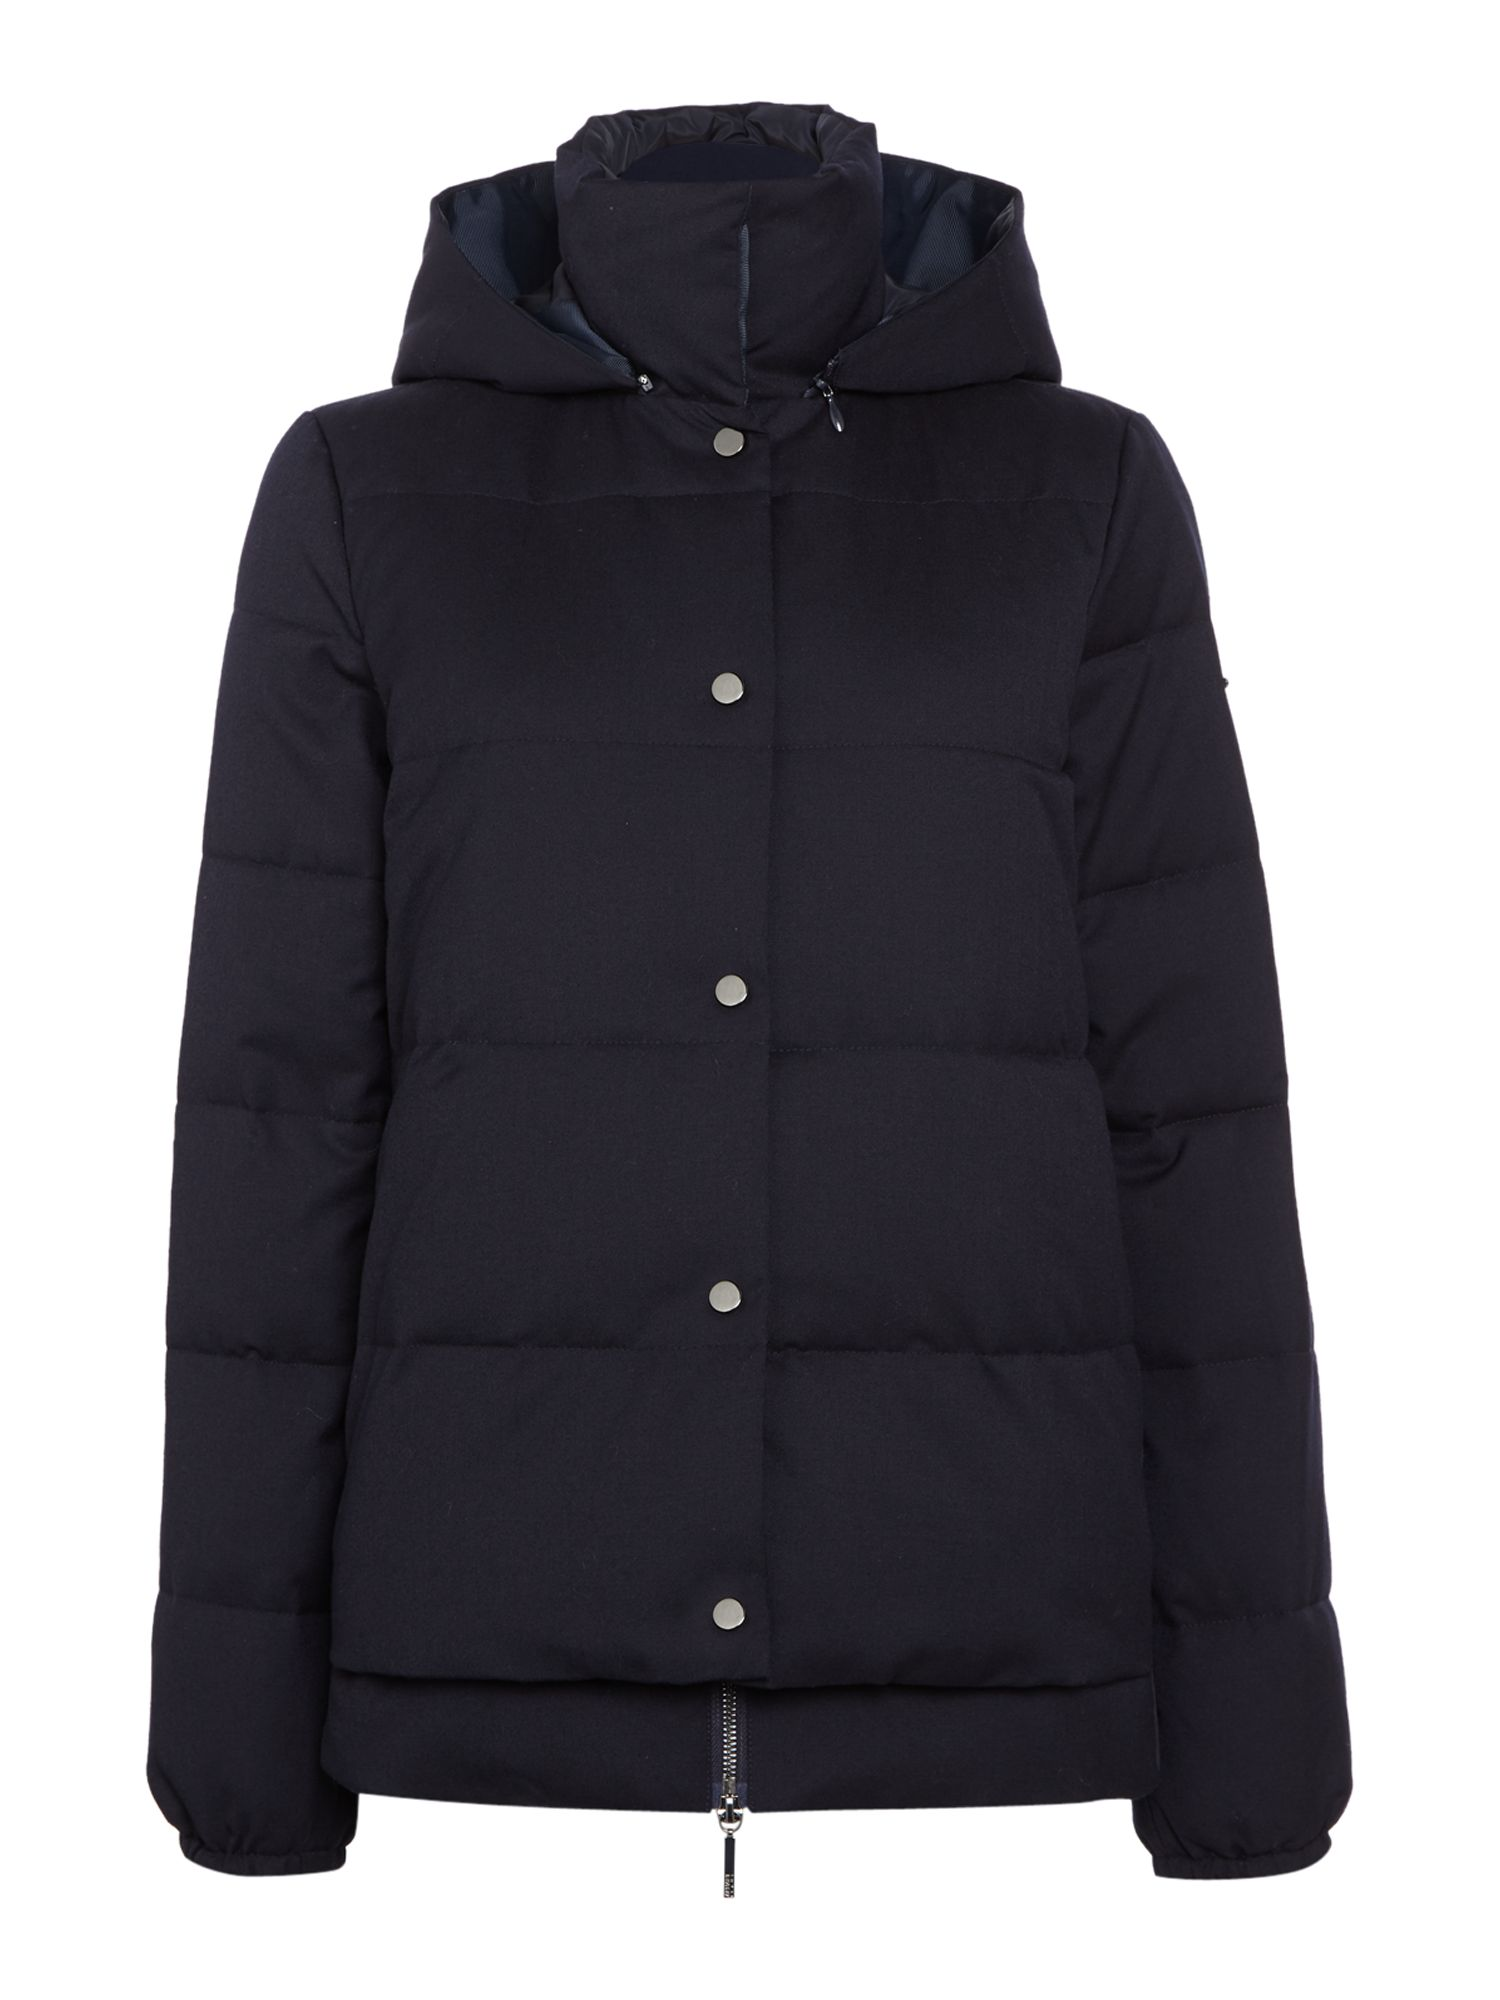 Armani Jeans Short padded hooded jacket in blu notte, Blue